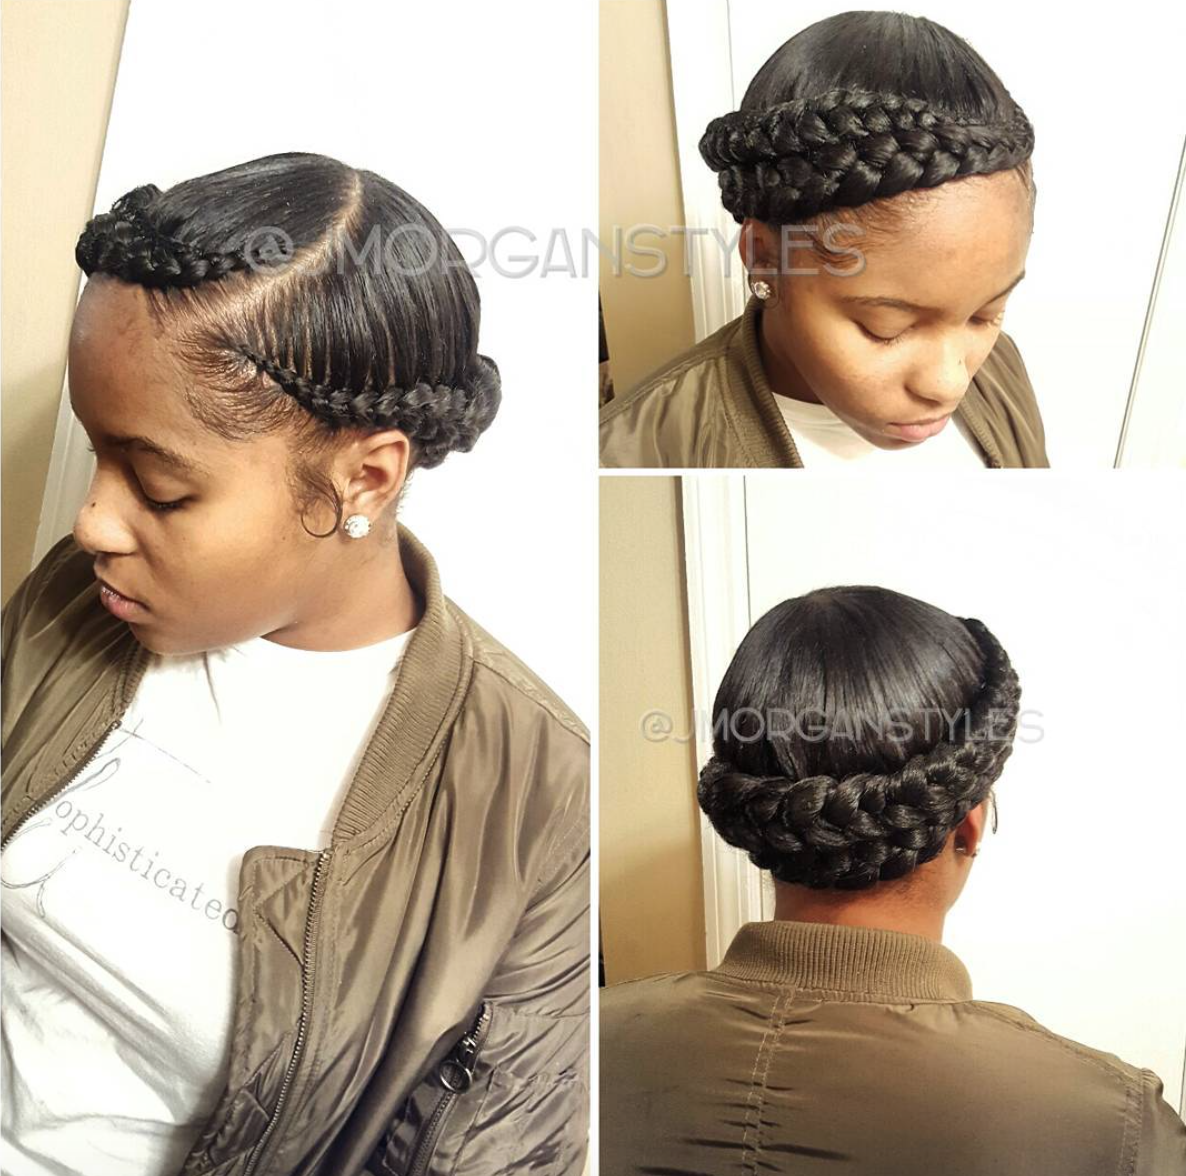 Dope Double Halo Braid Via Jmorganstyles Read The Article